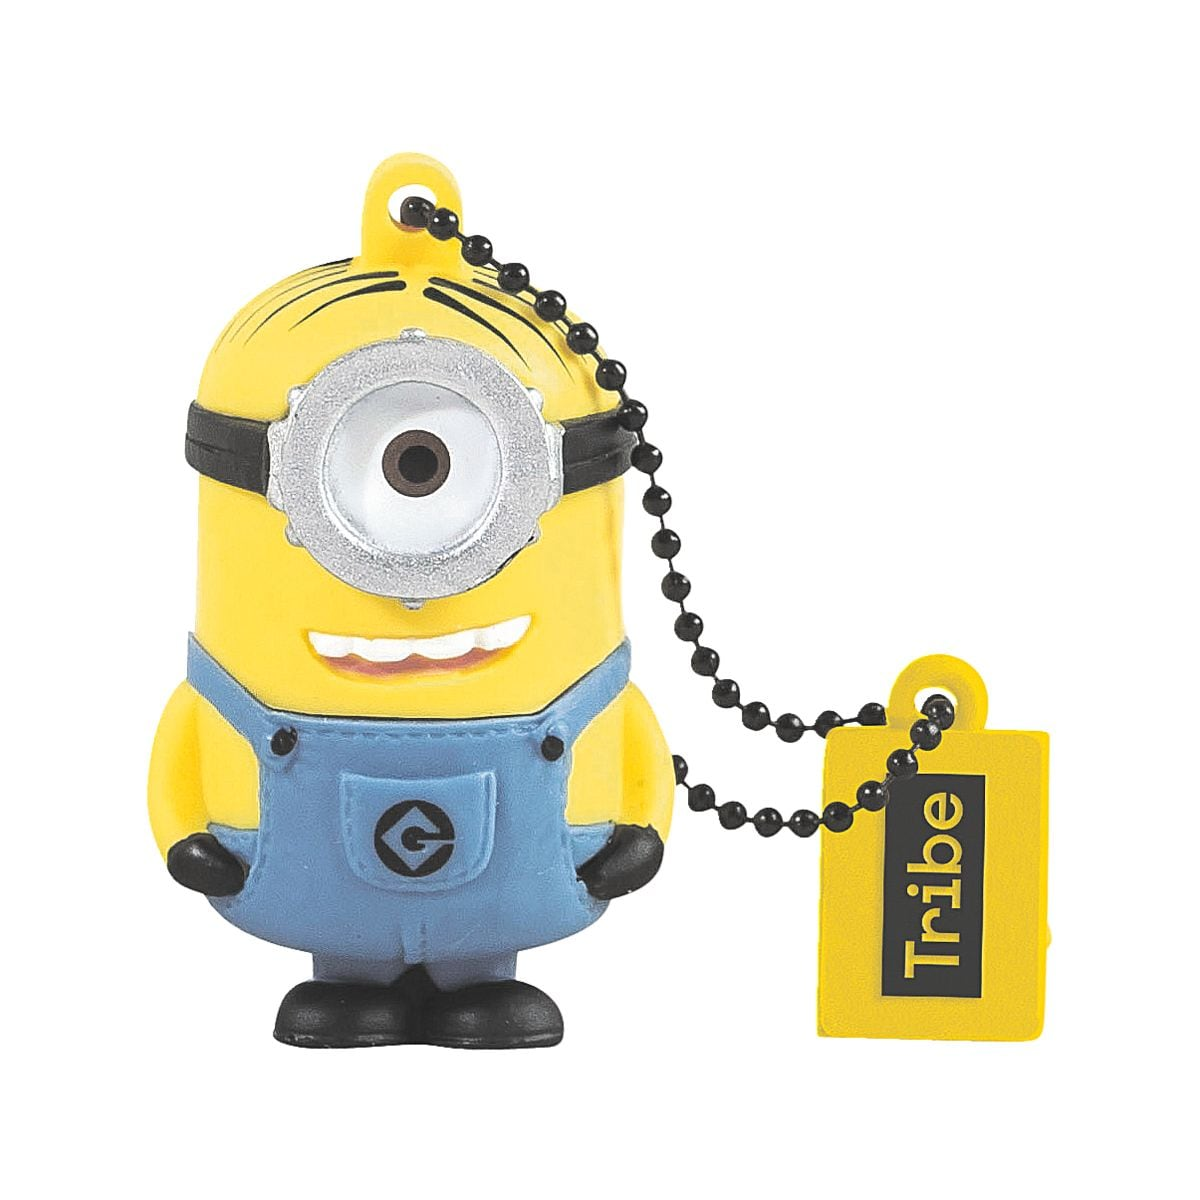 USB-Stick 16 GB Minions Stuart, USB 2.0